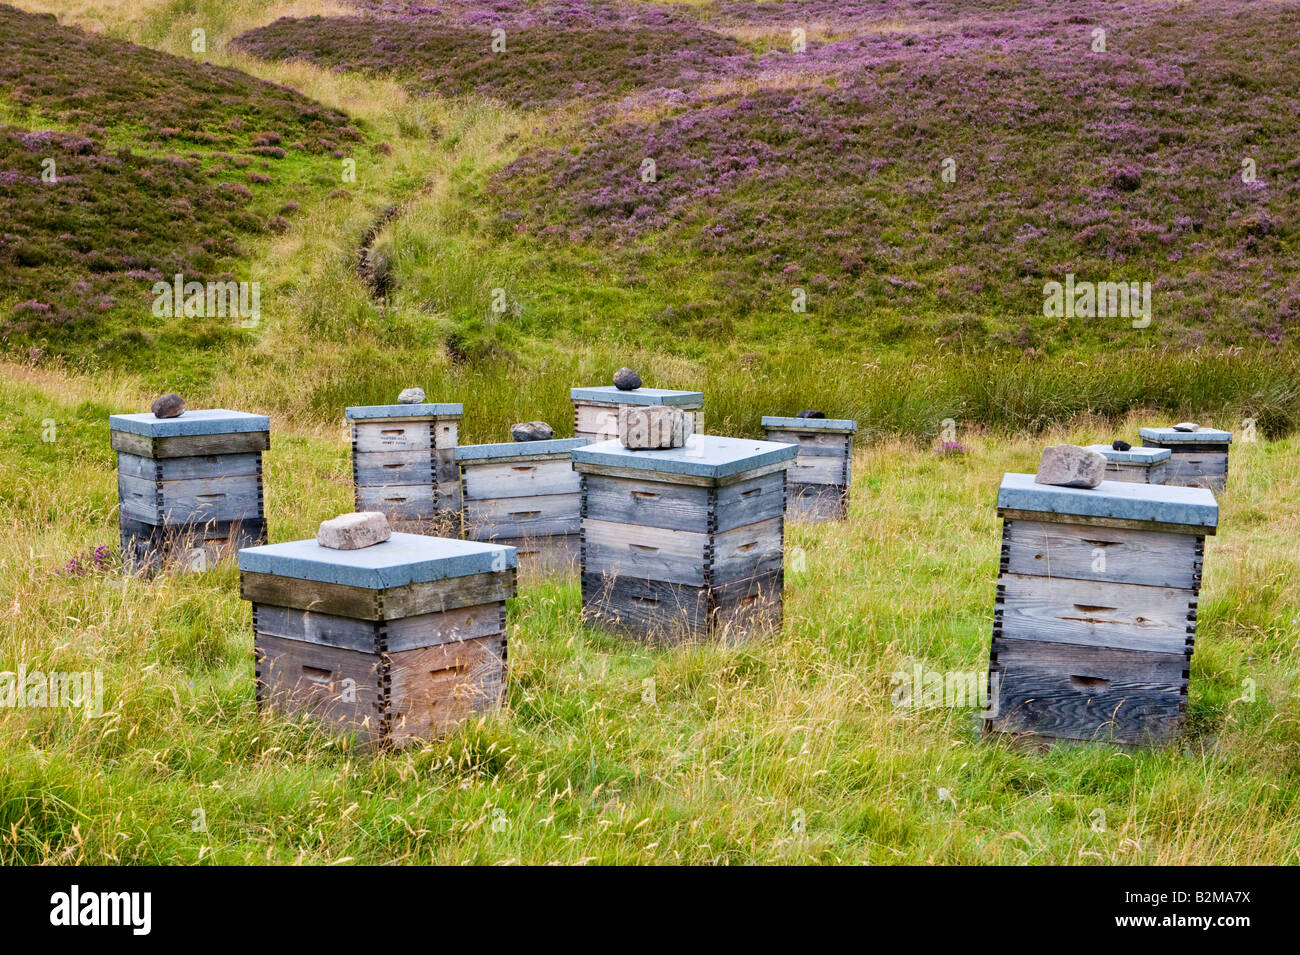 Watch How to Harvest a Bee Hive from the Wilderness video